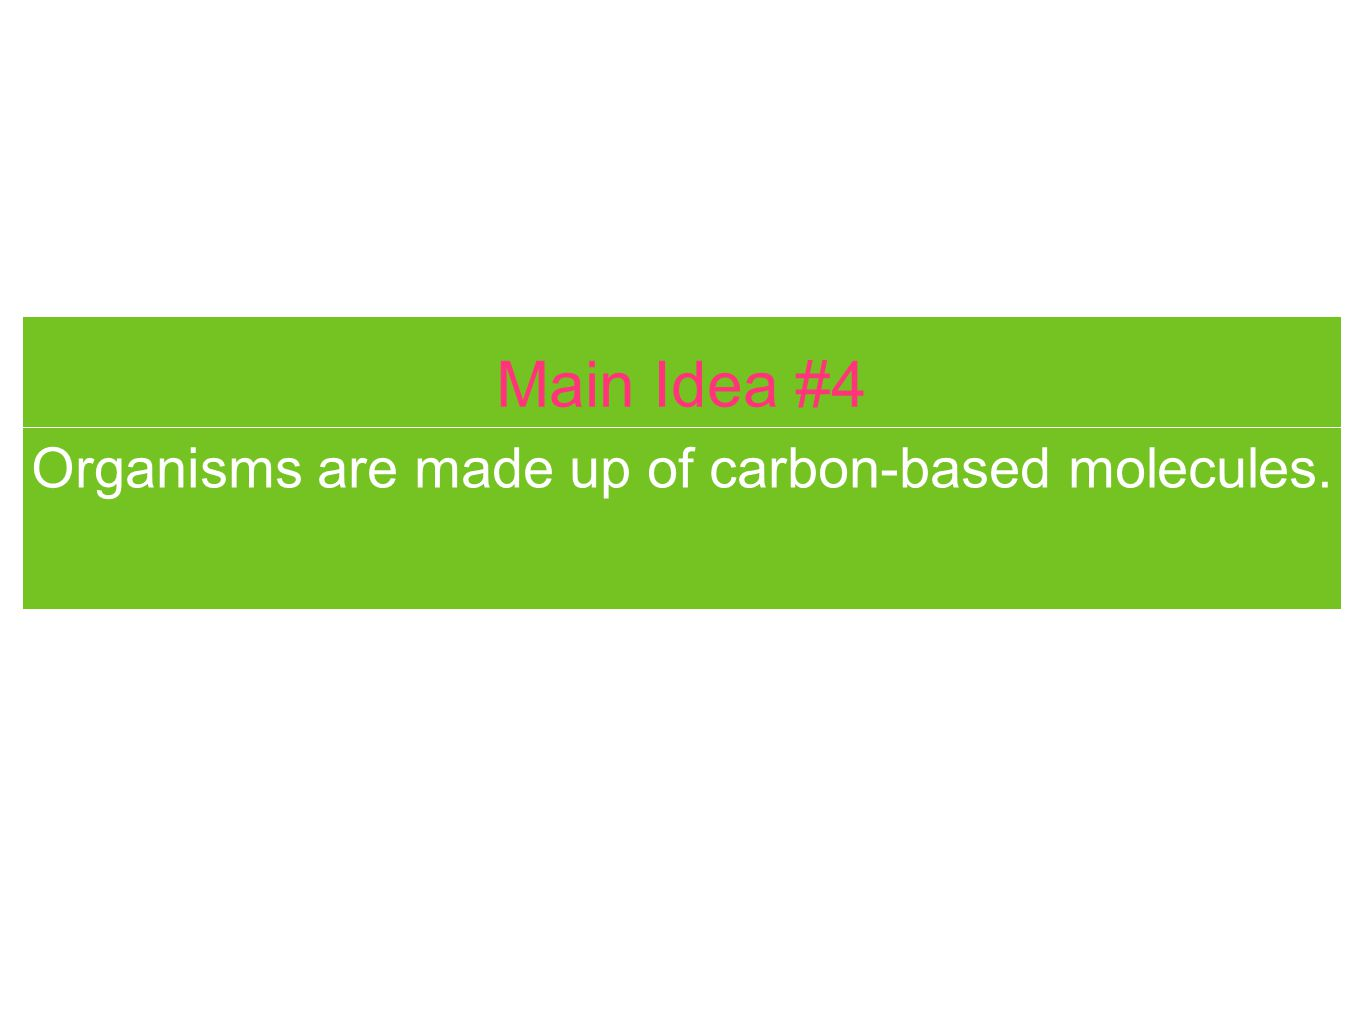 Organisms are made up of carbon-based molecules.